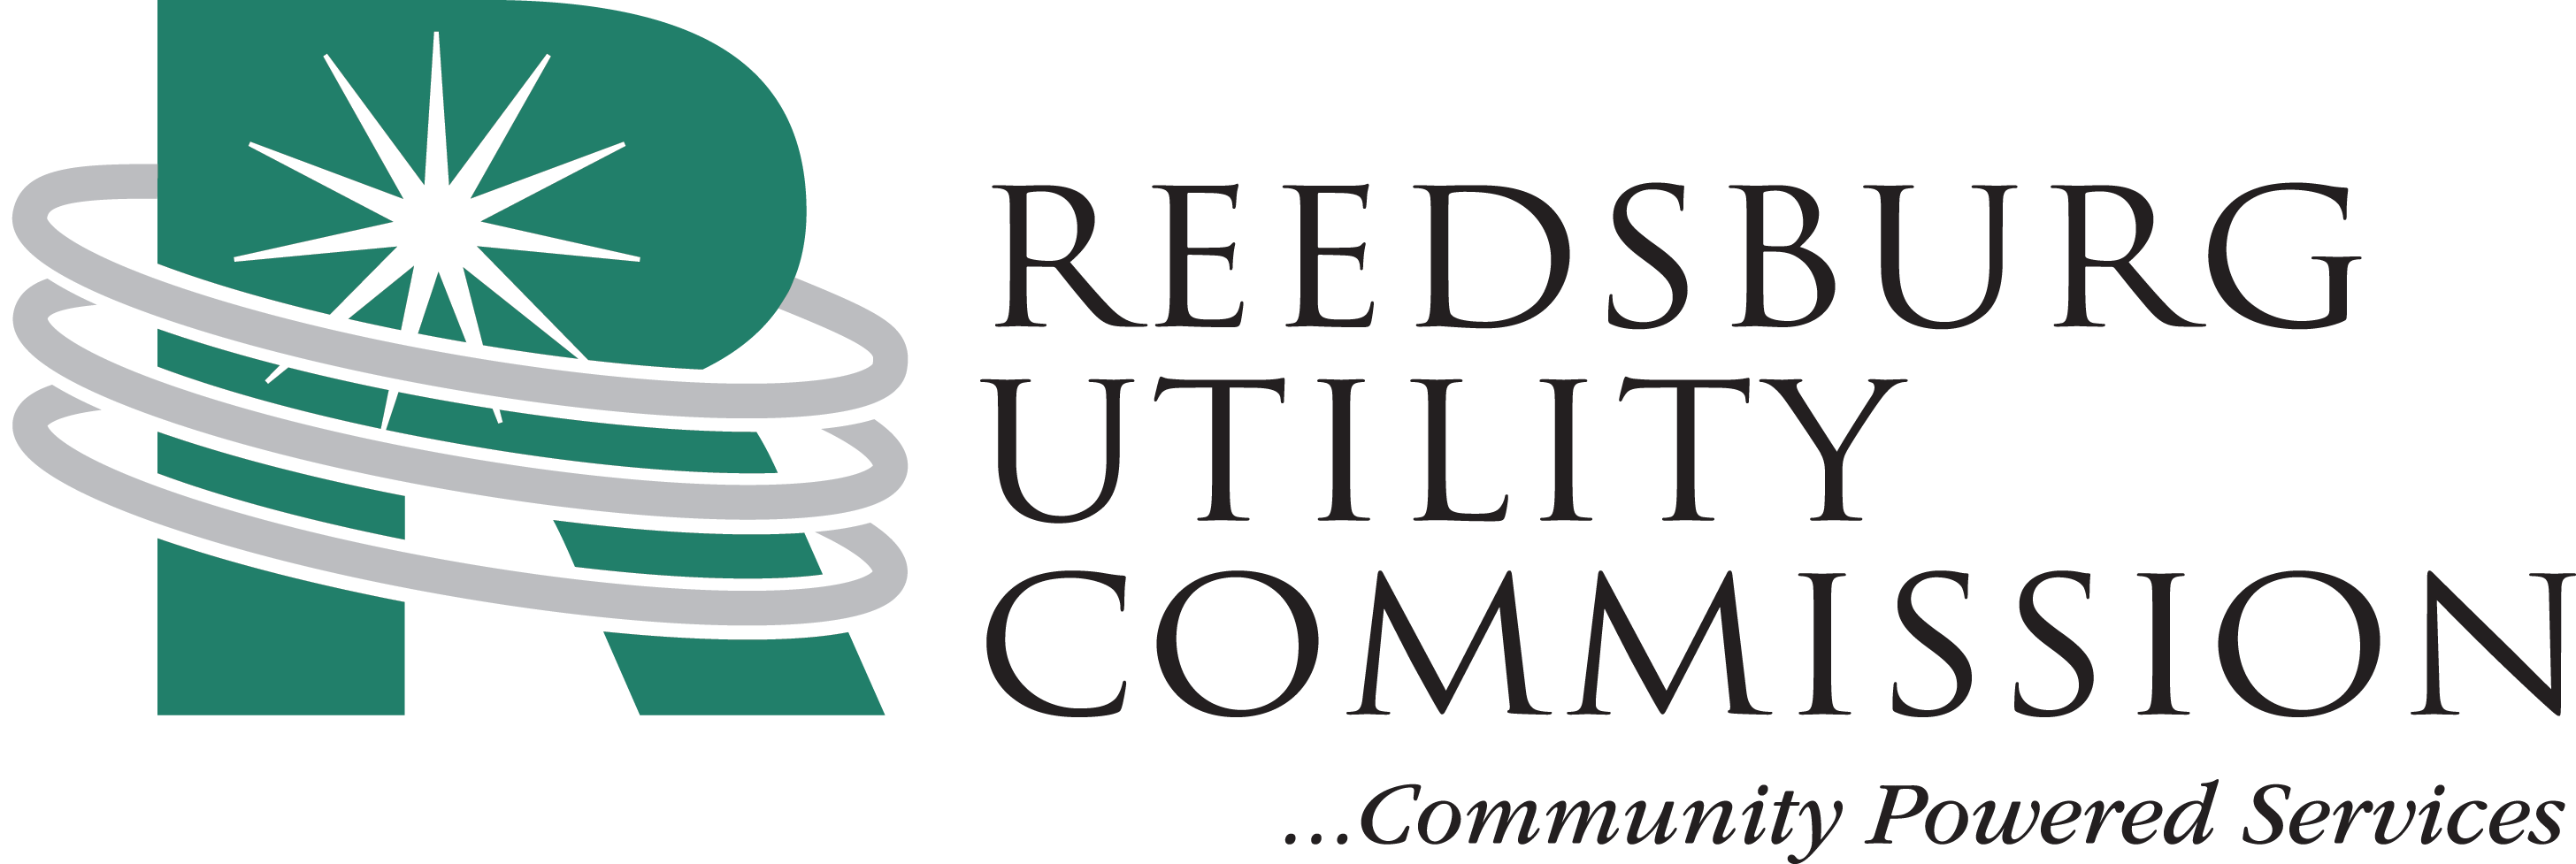 Reedsburg Utility Commission logo